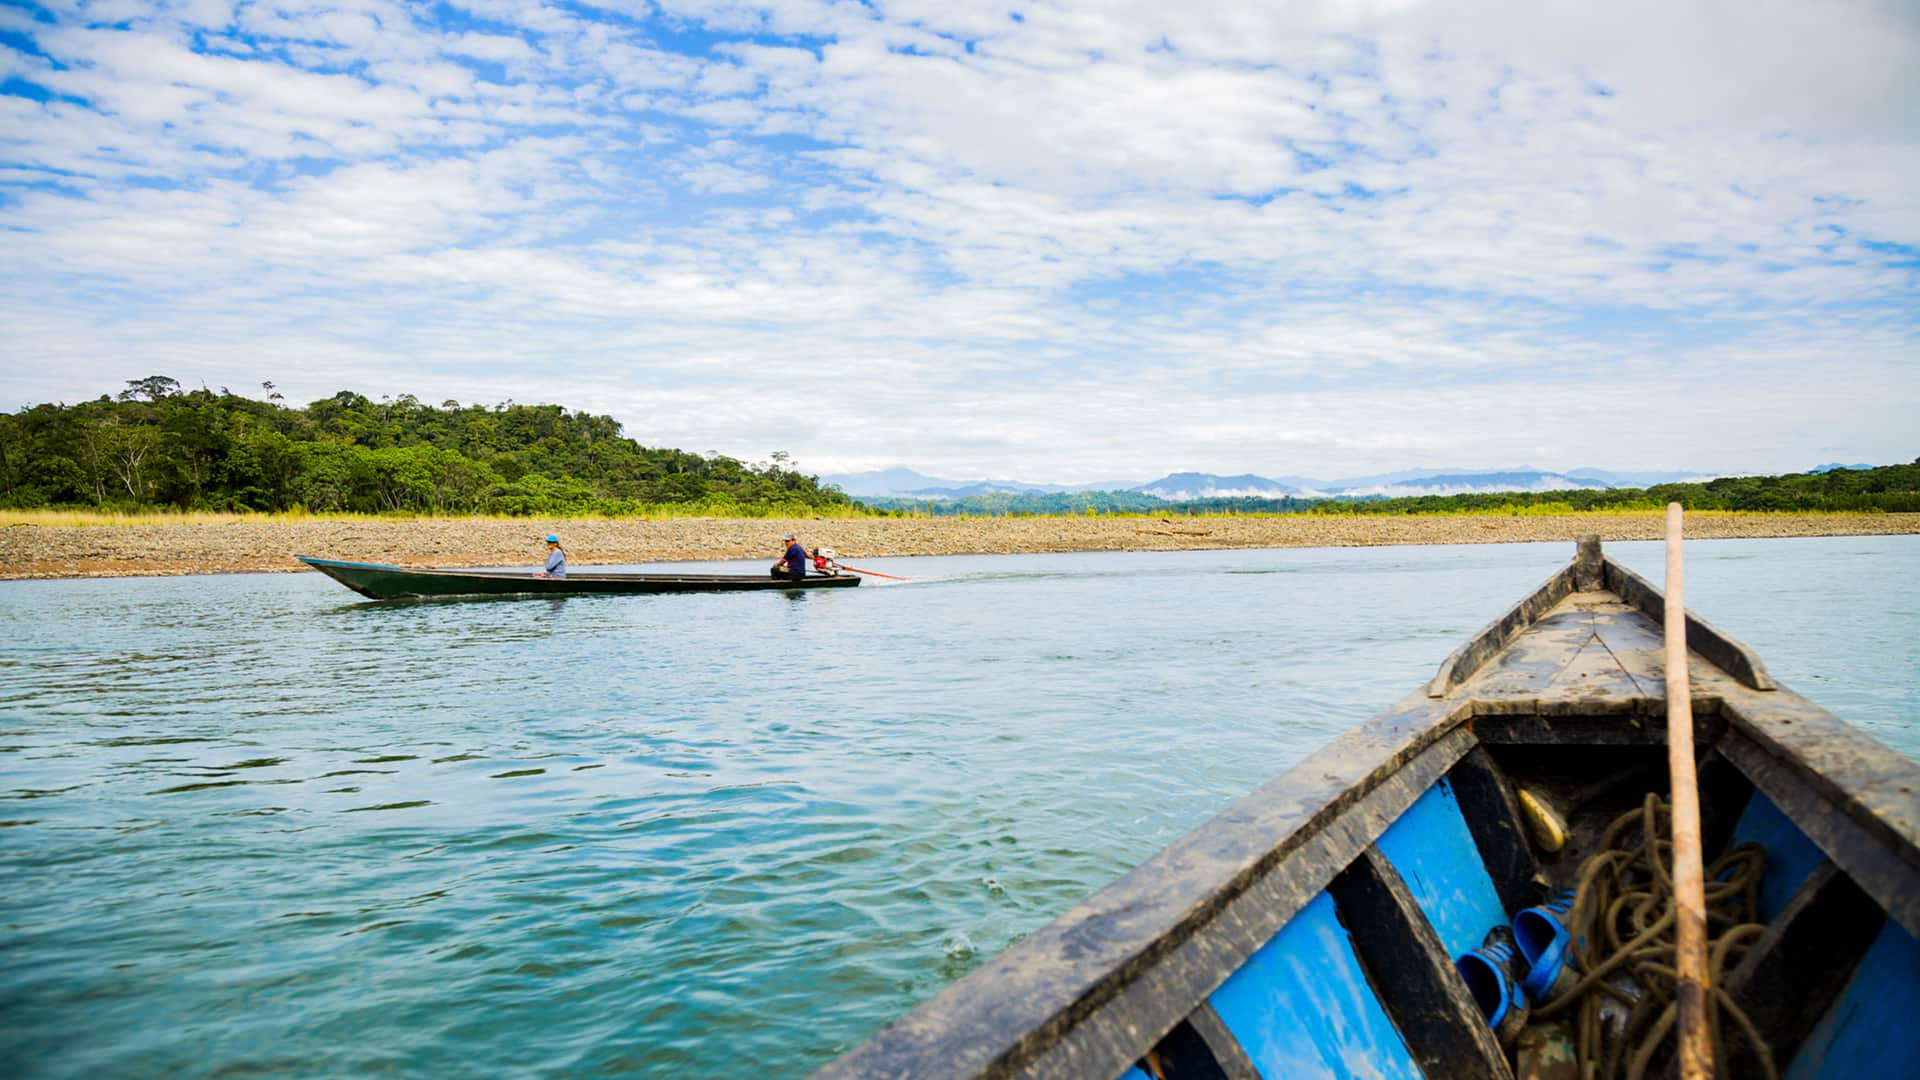 11Boat view over the Alto Madre de Dios river departing from Shintuya's port | Responsible Travel Peru